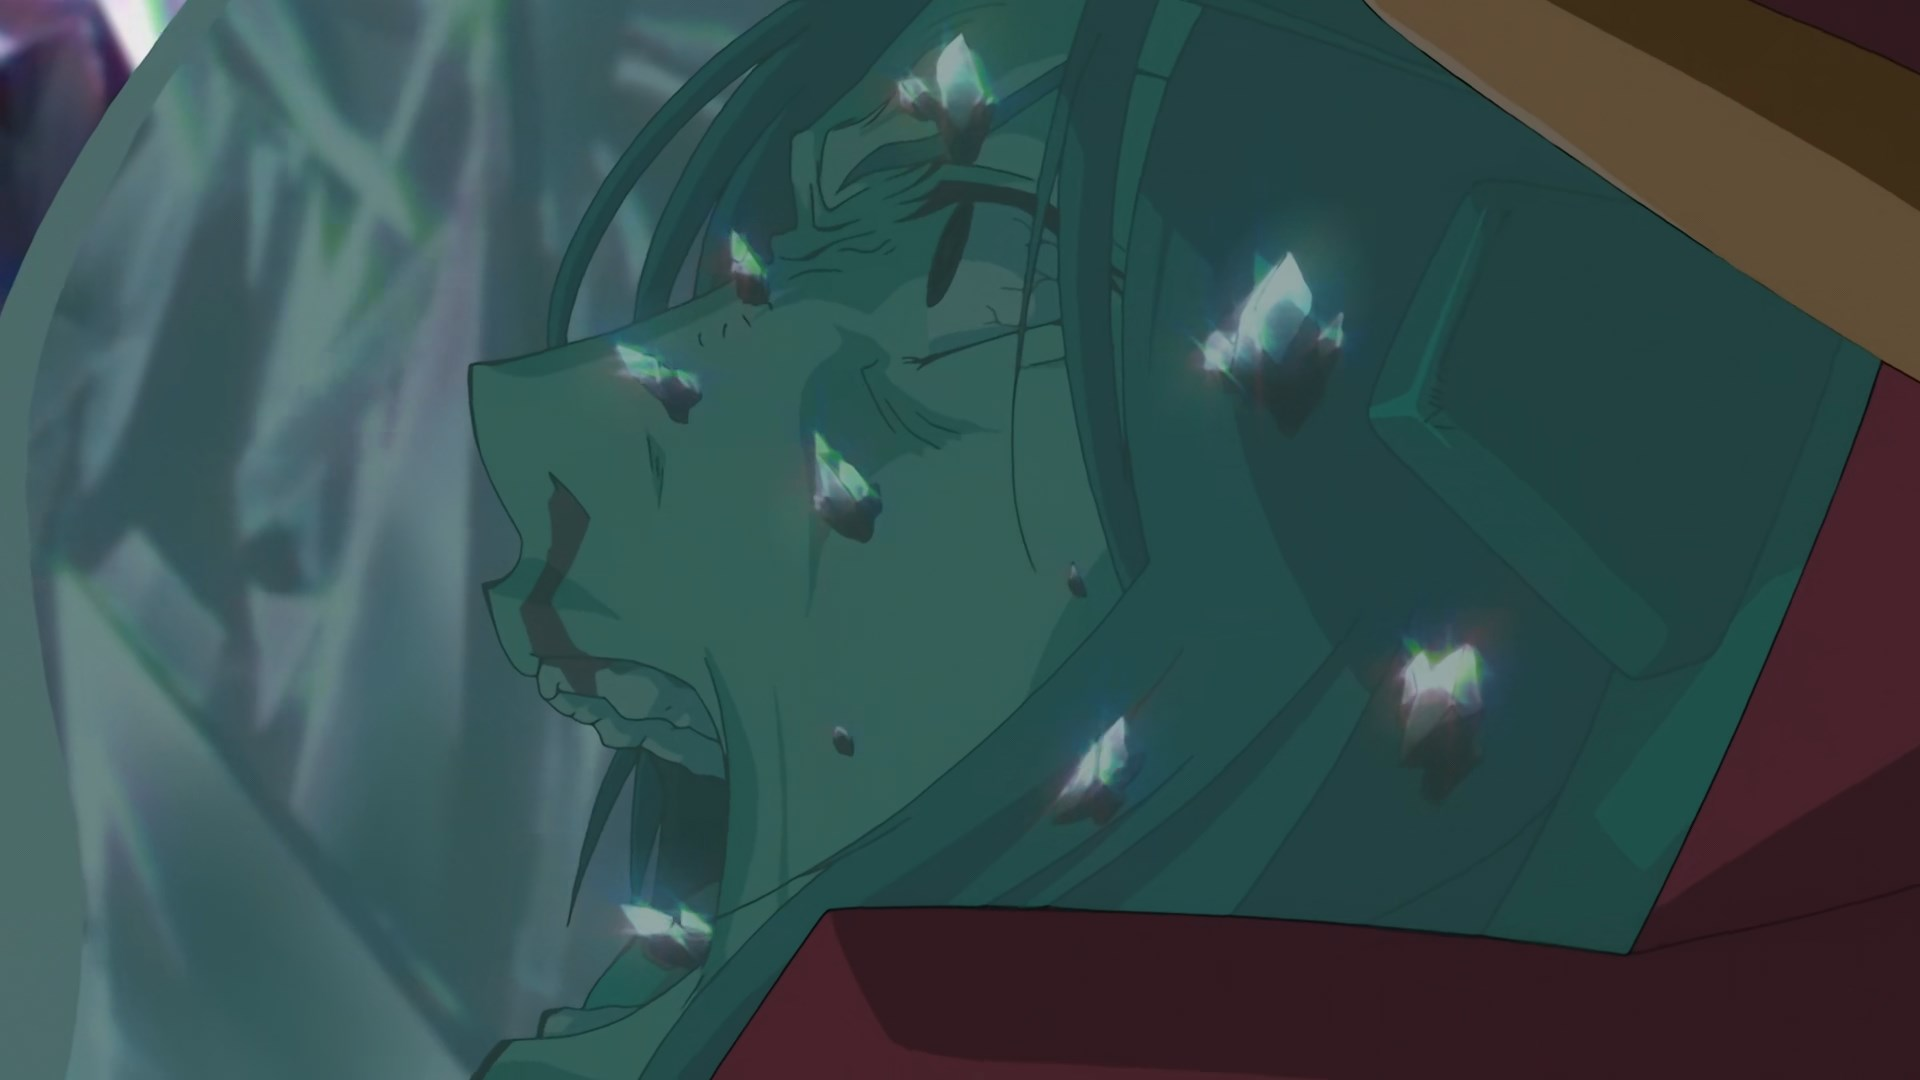 File:Gundam 00 Awakening of the Trailblazer - vlcsnap-2011-02-18-19h46m12s135.jpg